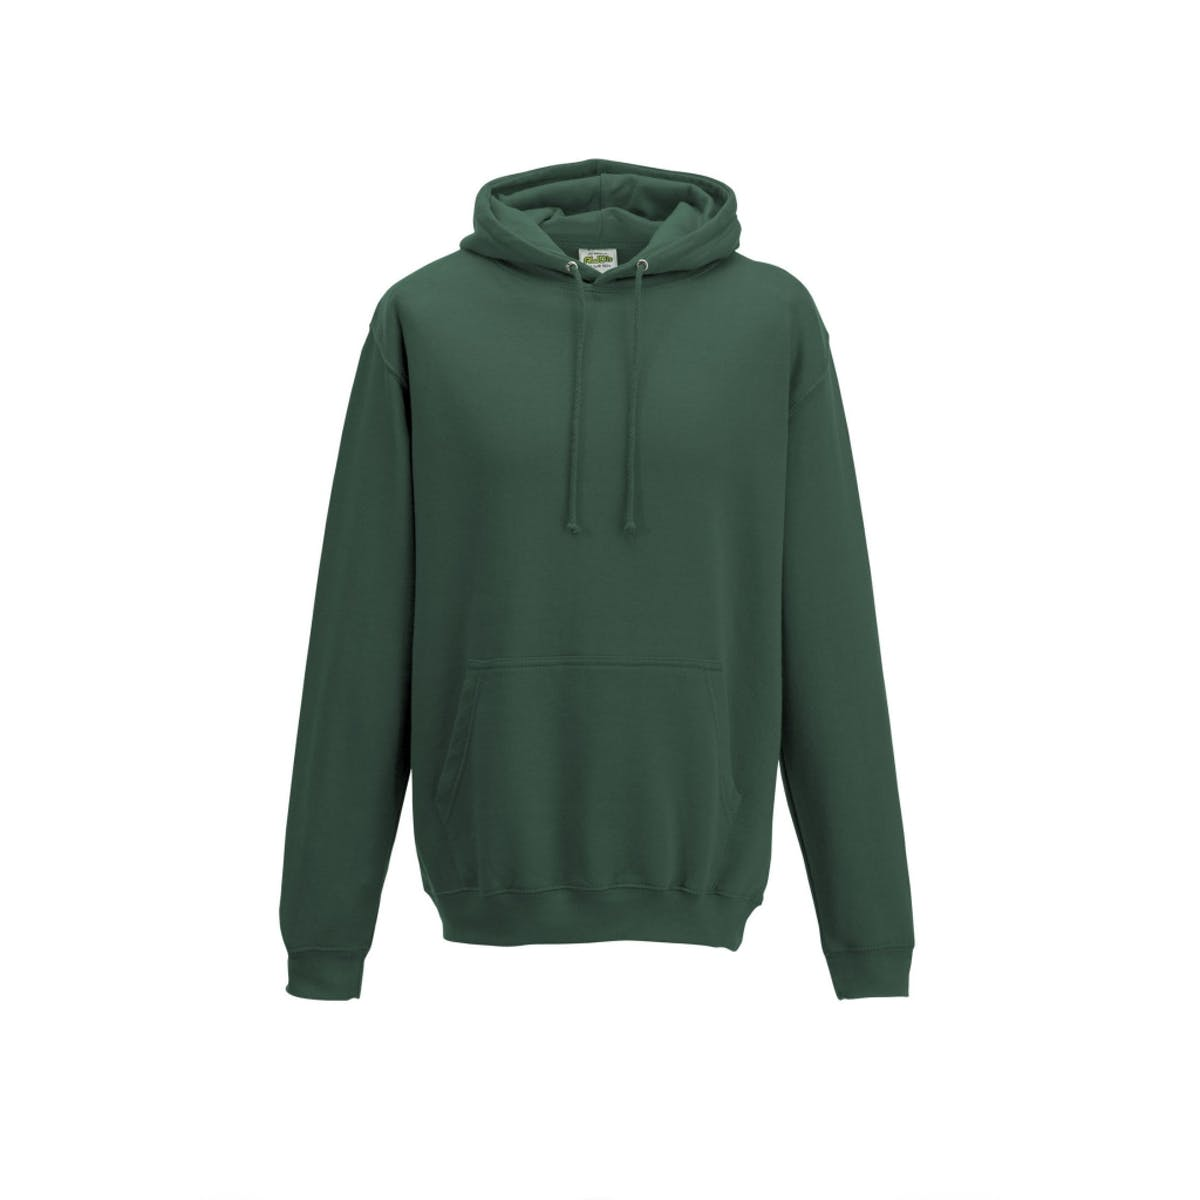 moss green college hoodies